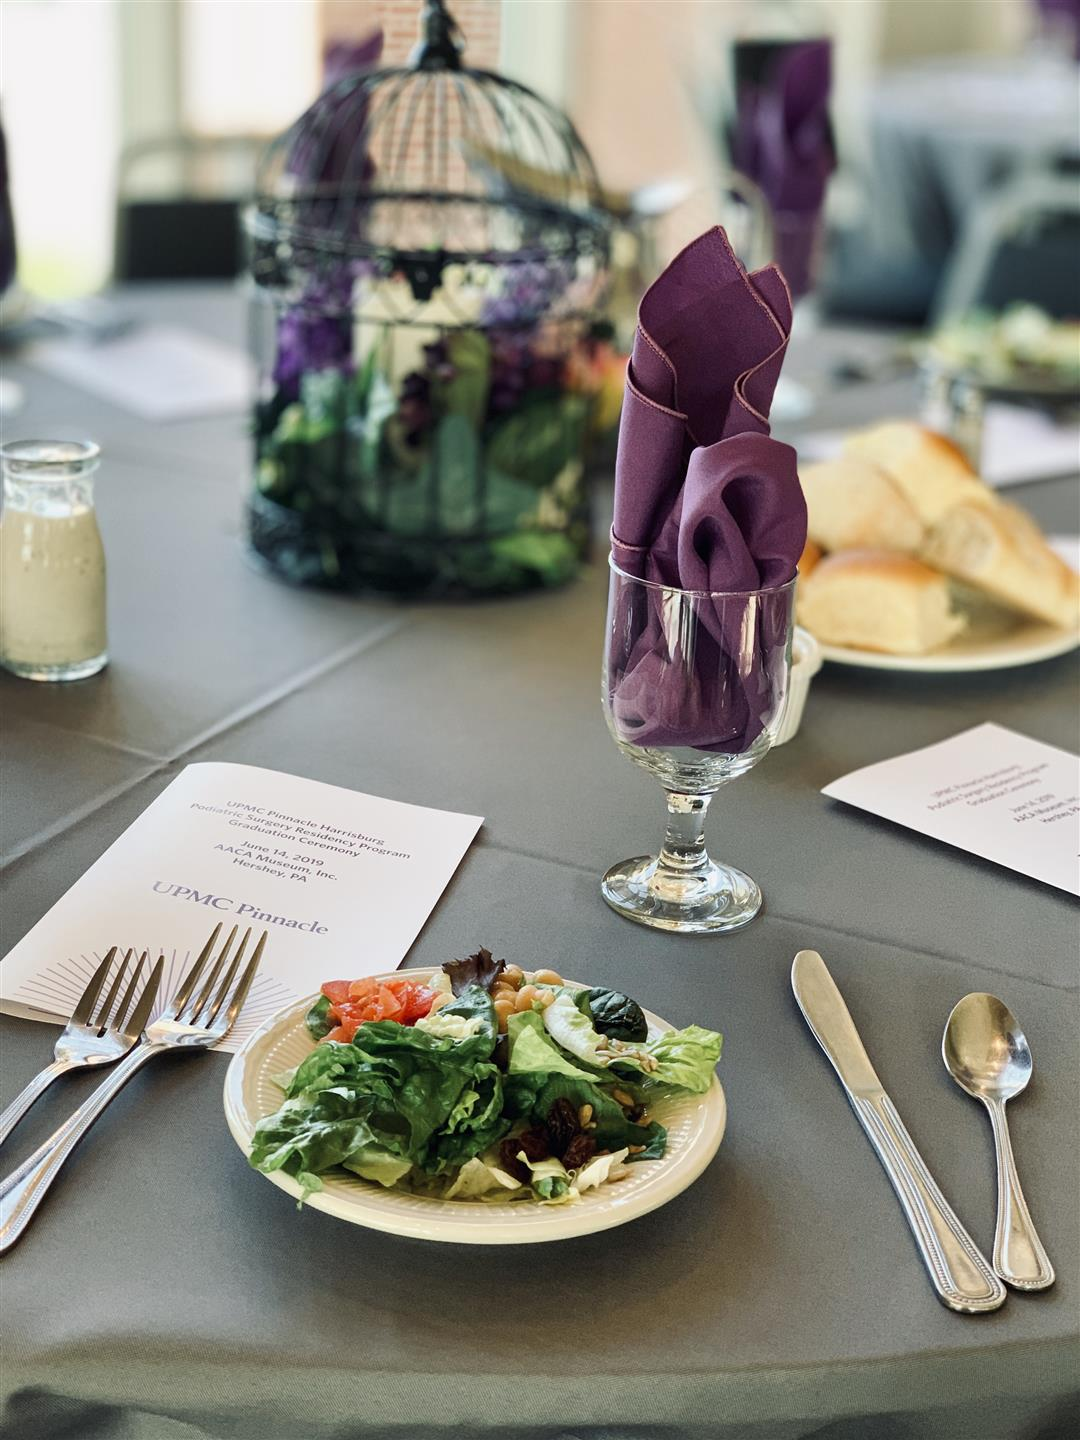 plate with salad on it. wine glass with purple napkin inside, and a menu pinned underneath silverware